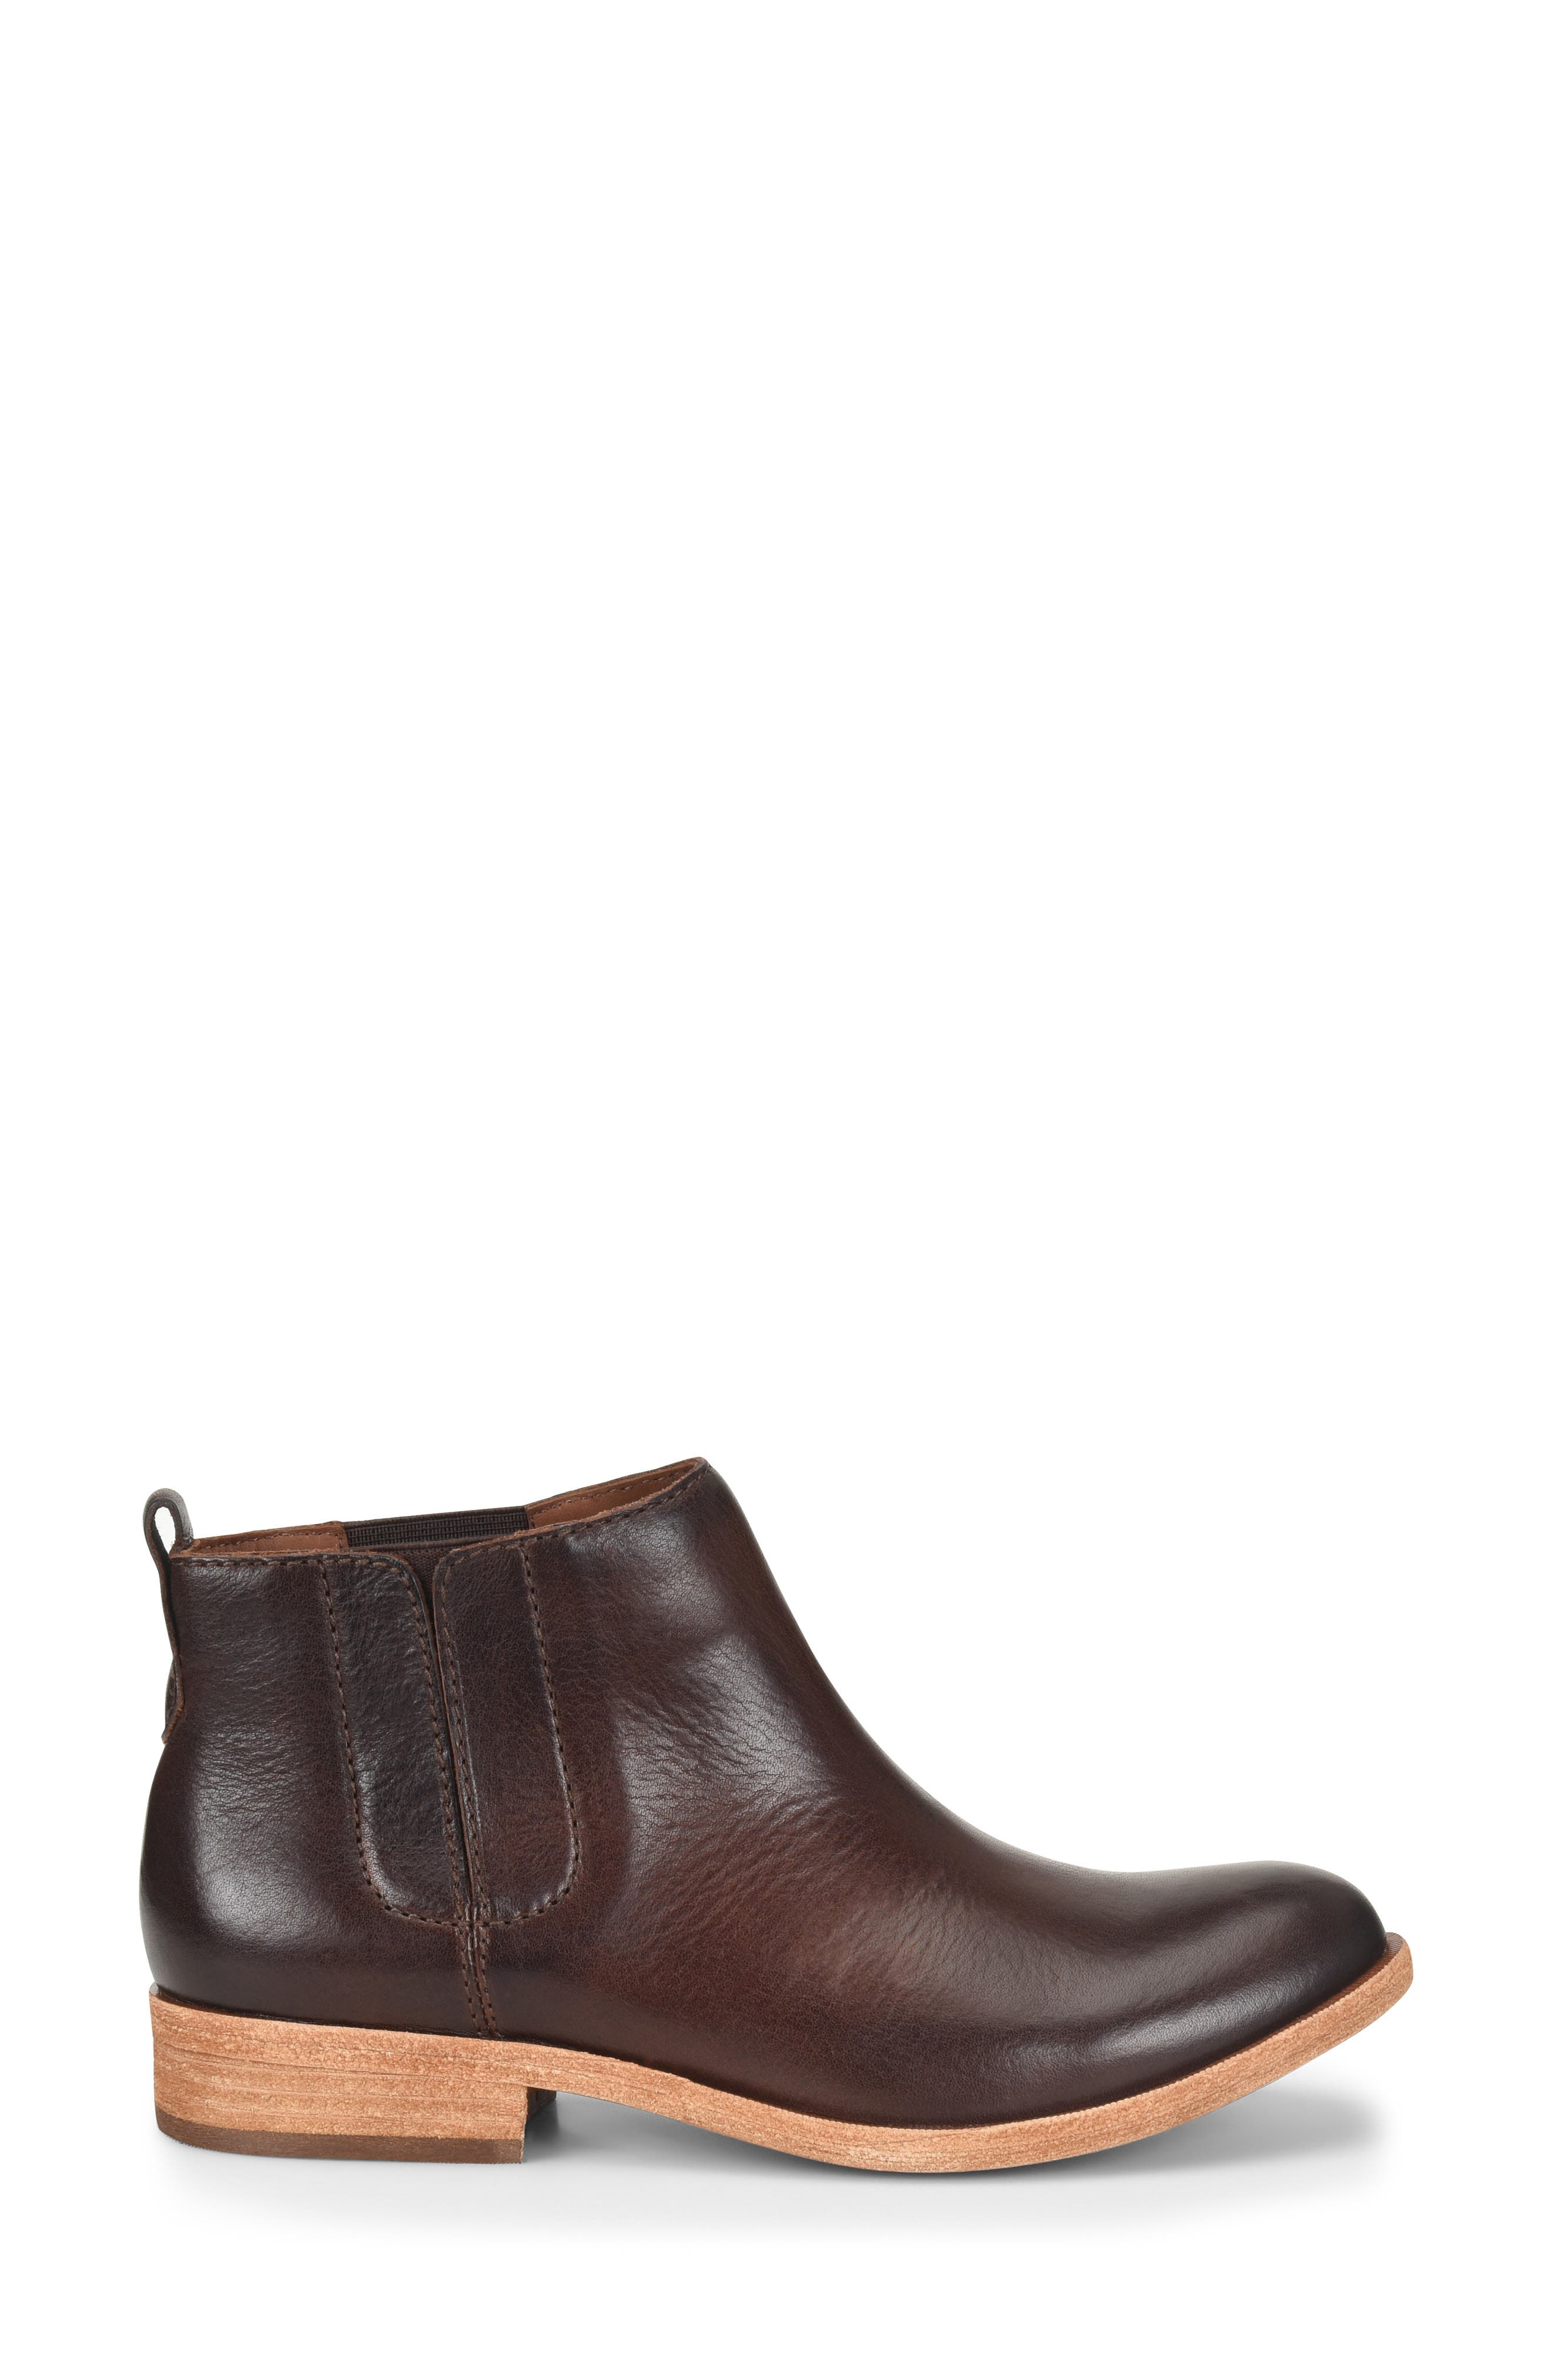 KORK-EASE<SUP>®</SUP>, Velma Bootie, Alternate thumbnail 3, color, DARK BROWN LEATHER